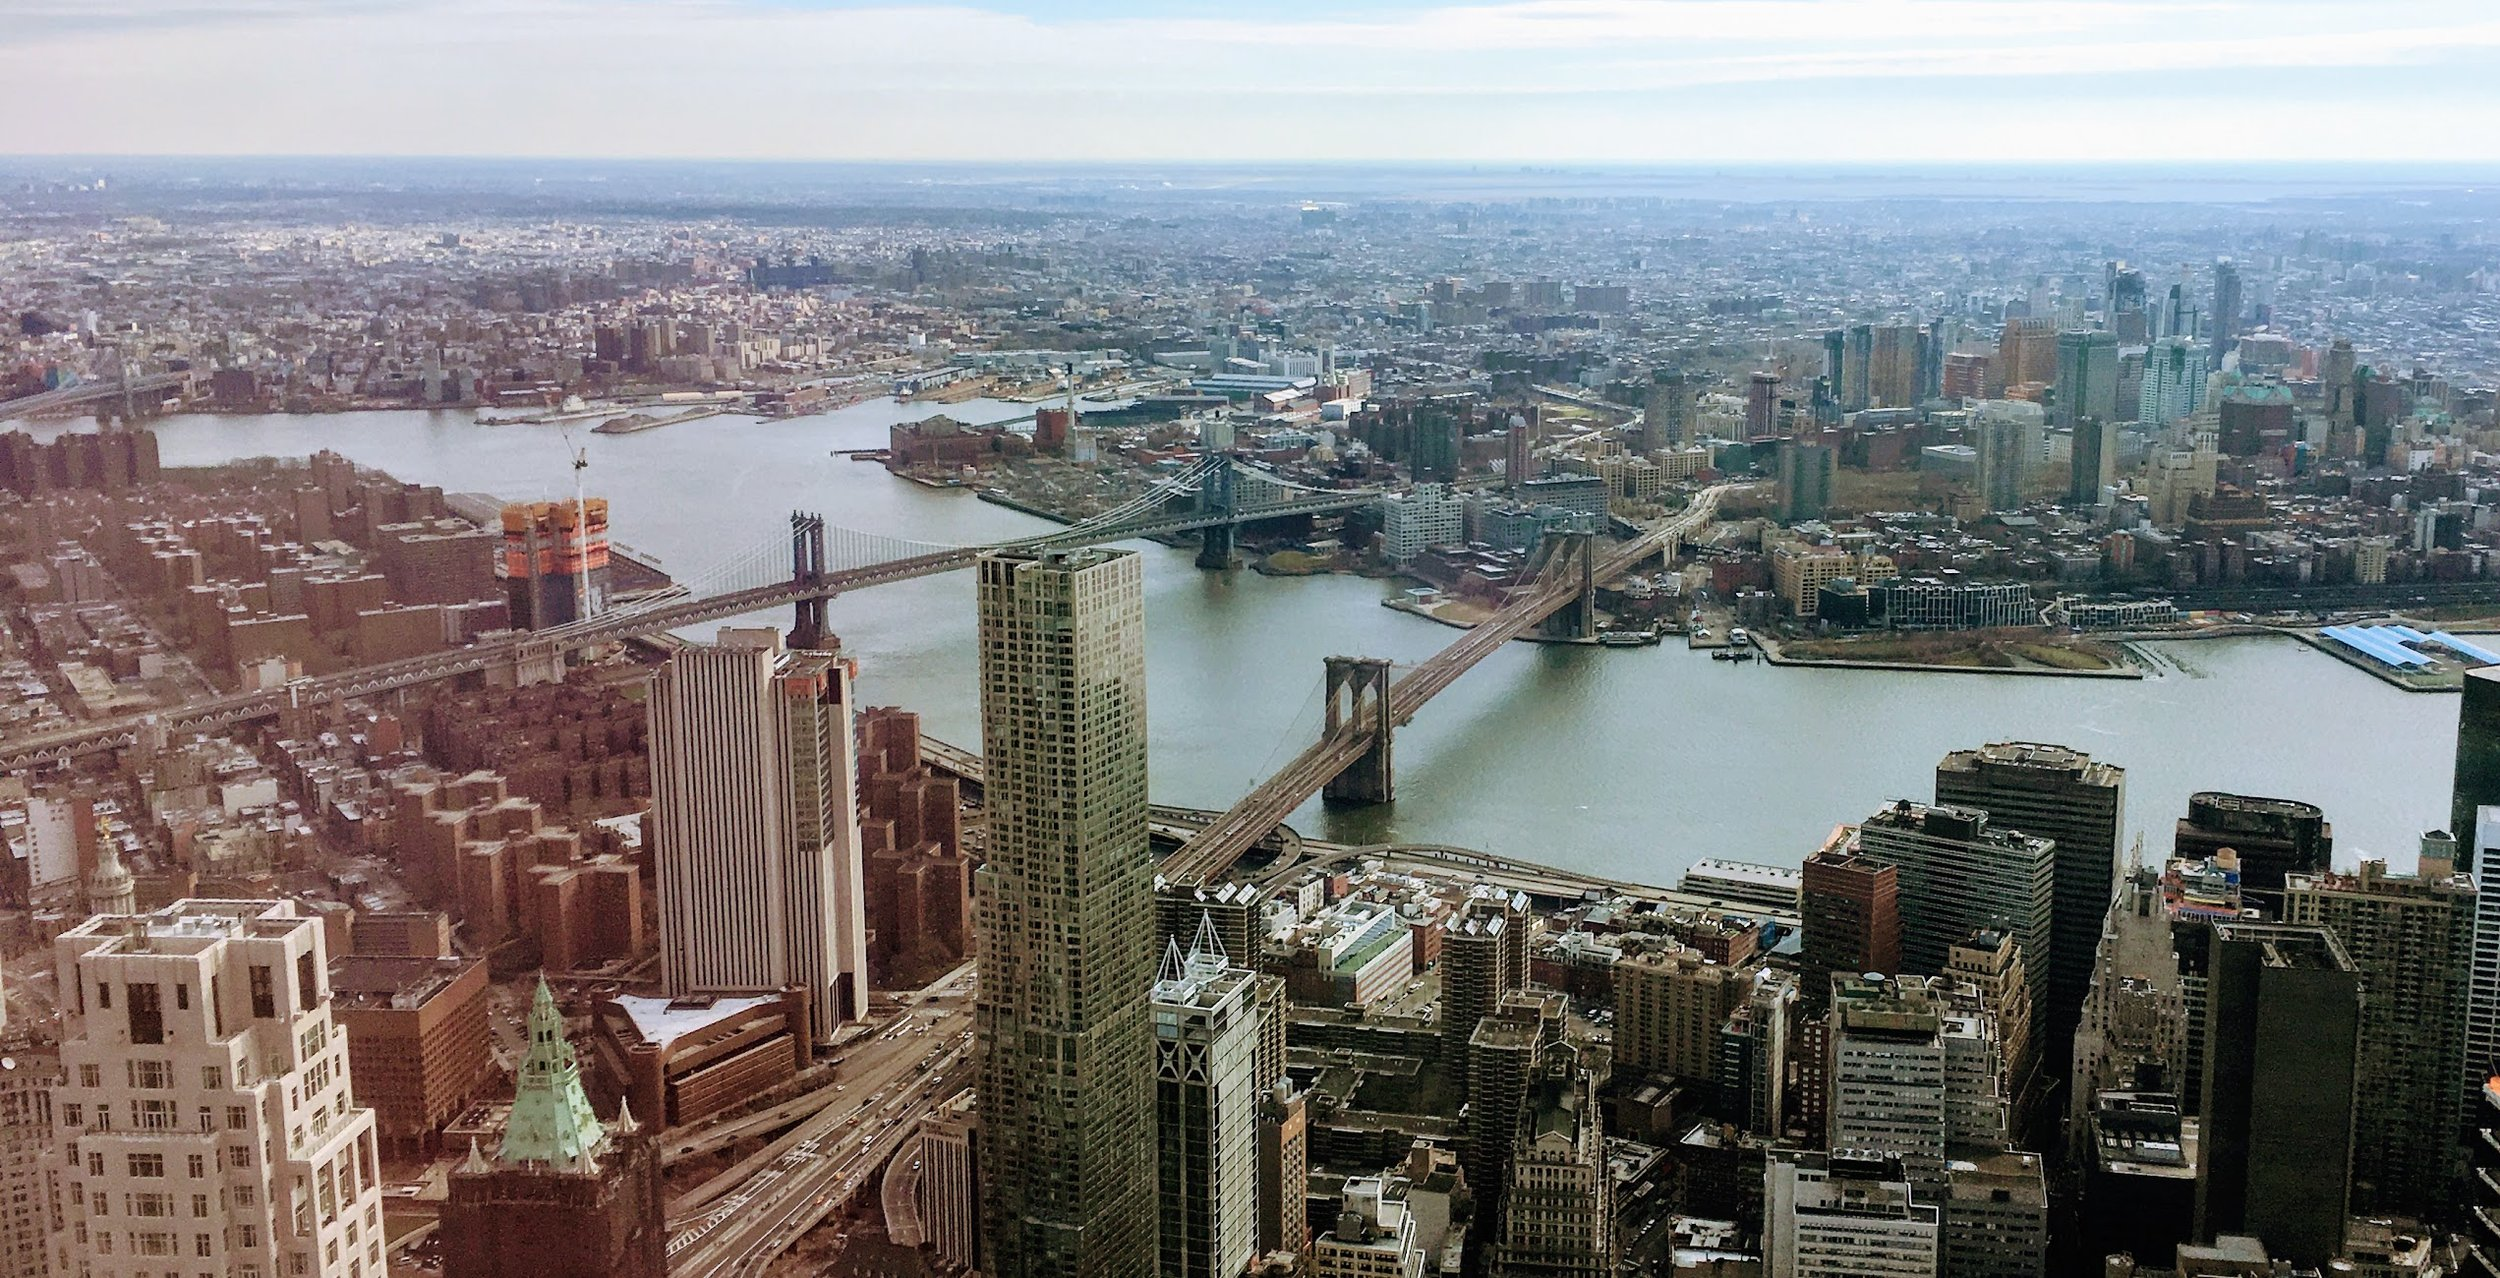 View from the top of One WTC